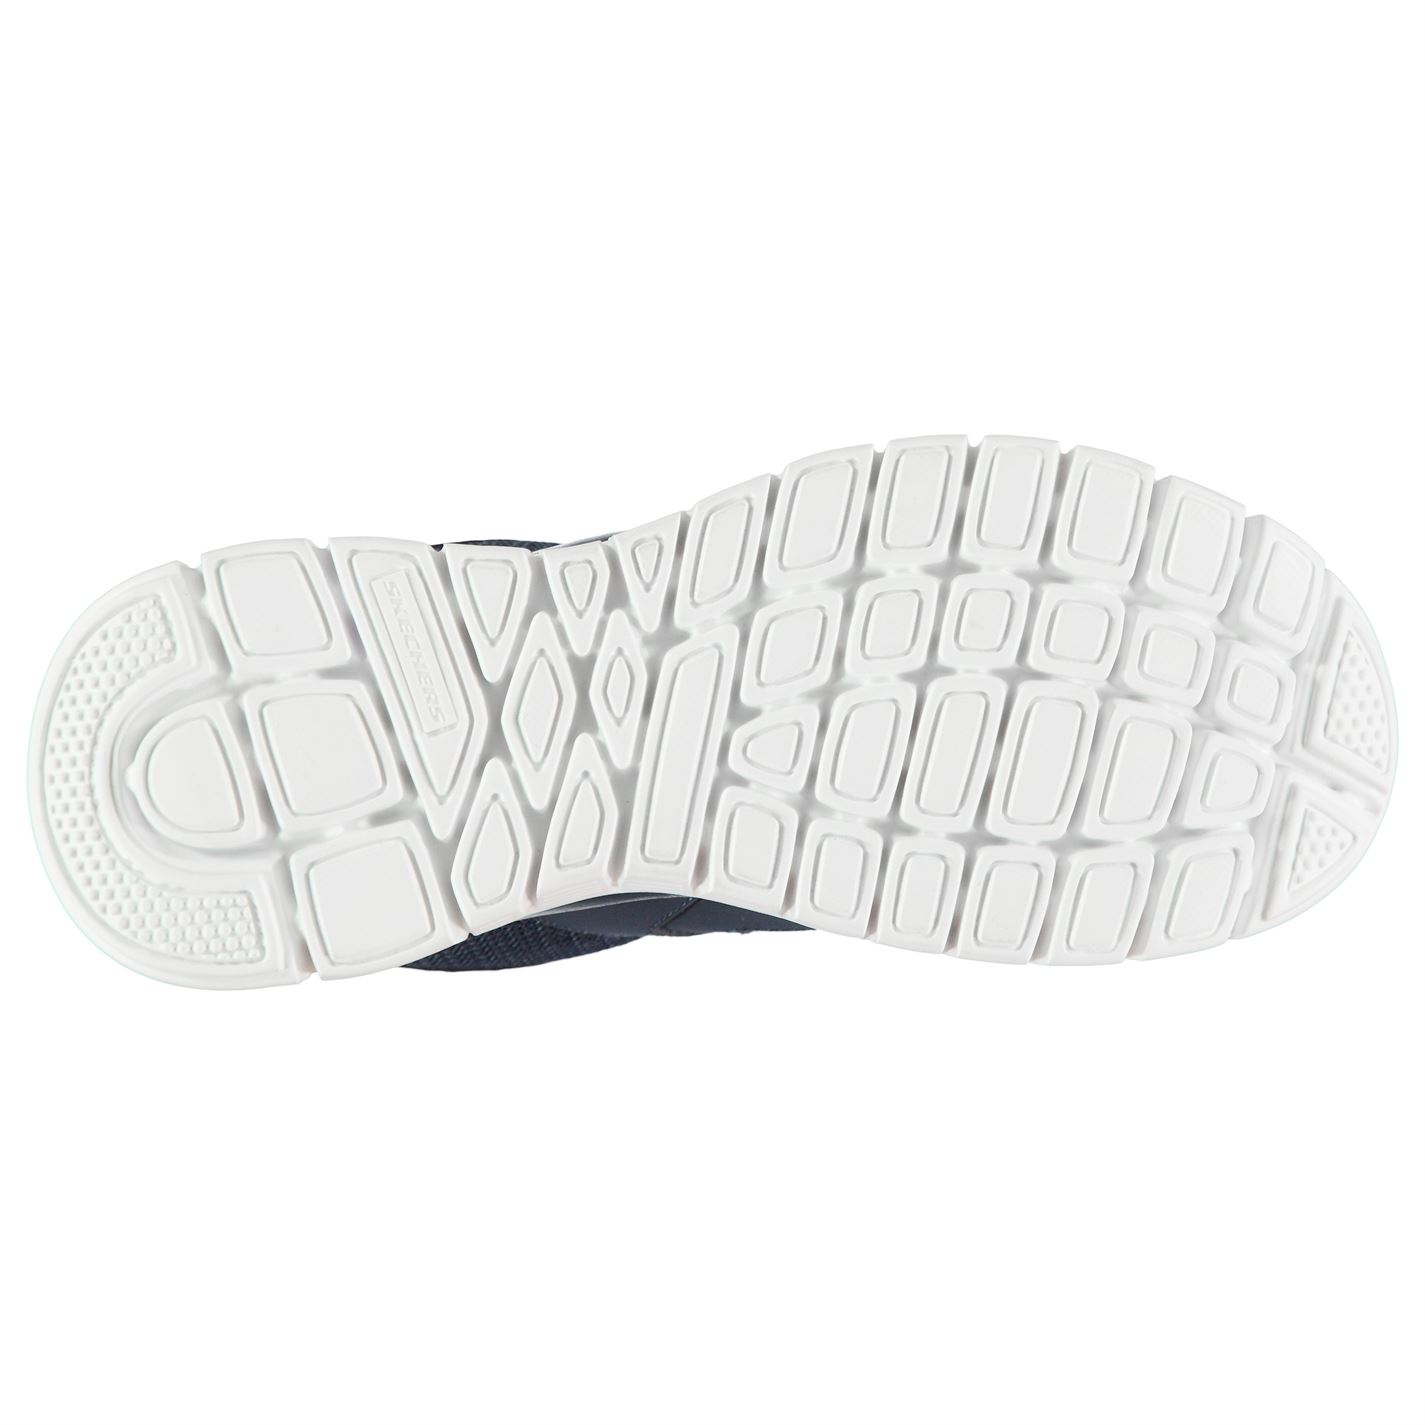 Skechers-Mens-Flex-Agoura-Trainers-Sports-Shoes-Lace-Up-Breathable-Lightweight thumbnail 9